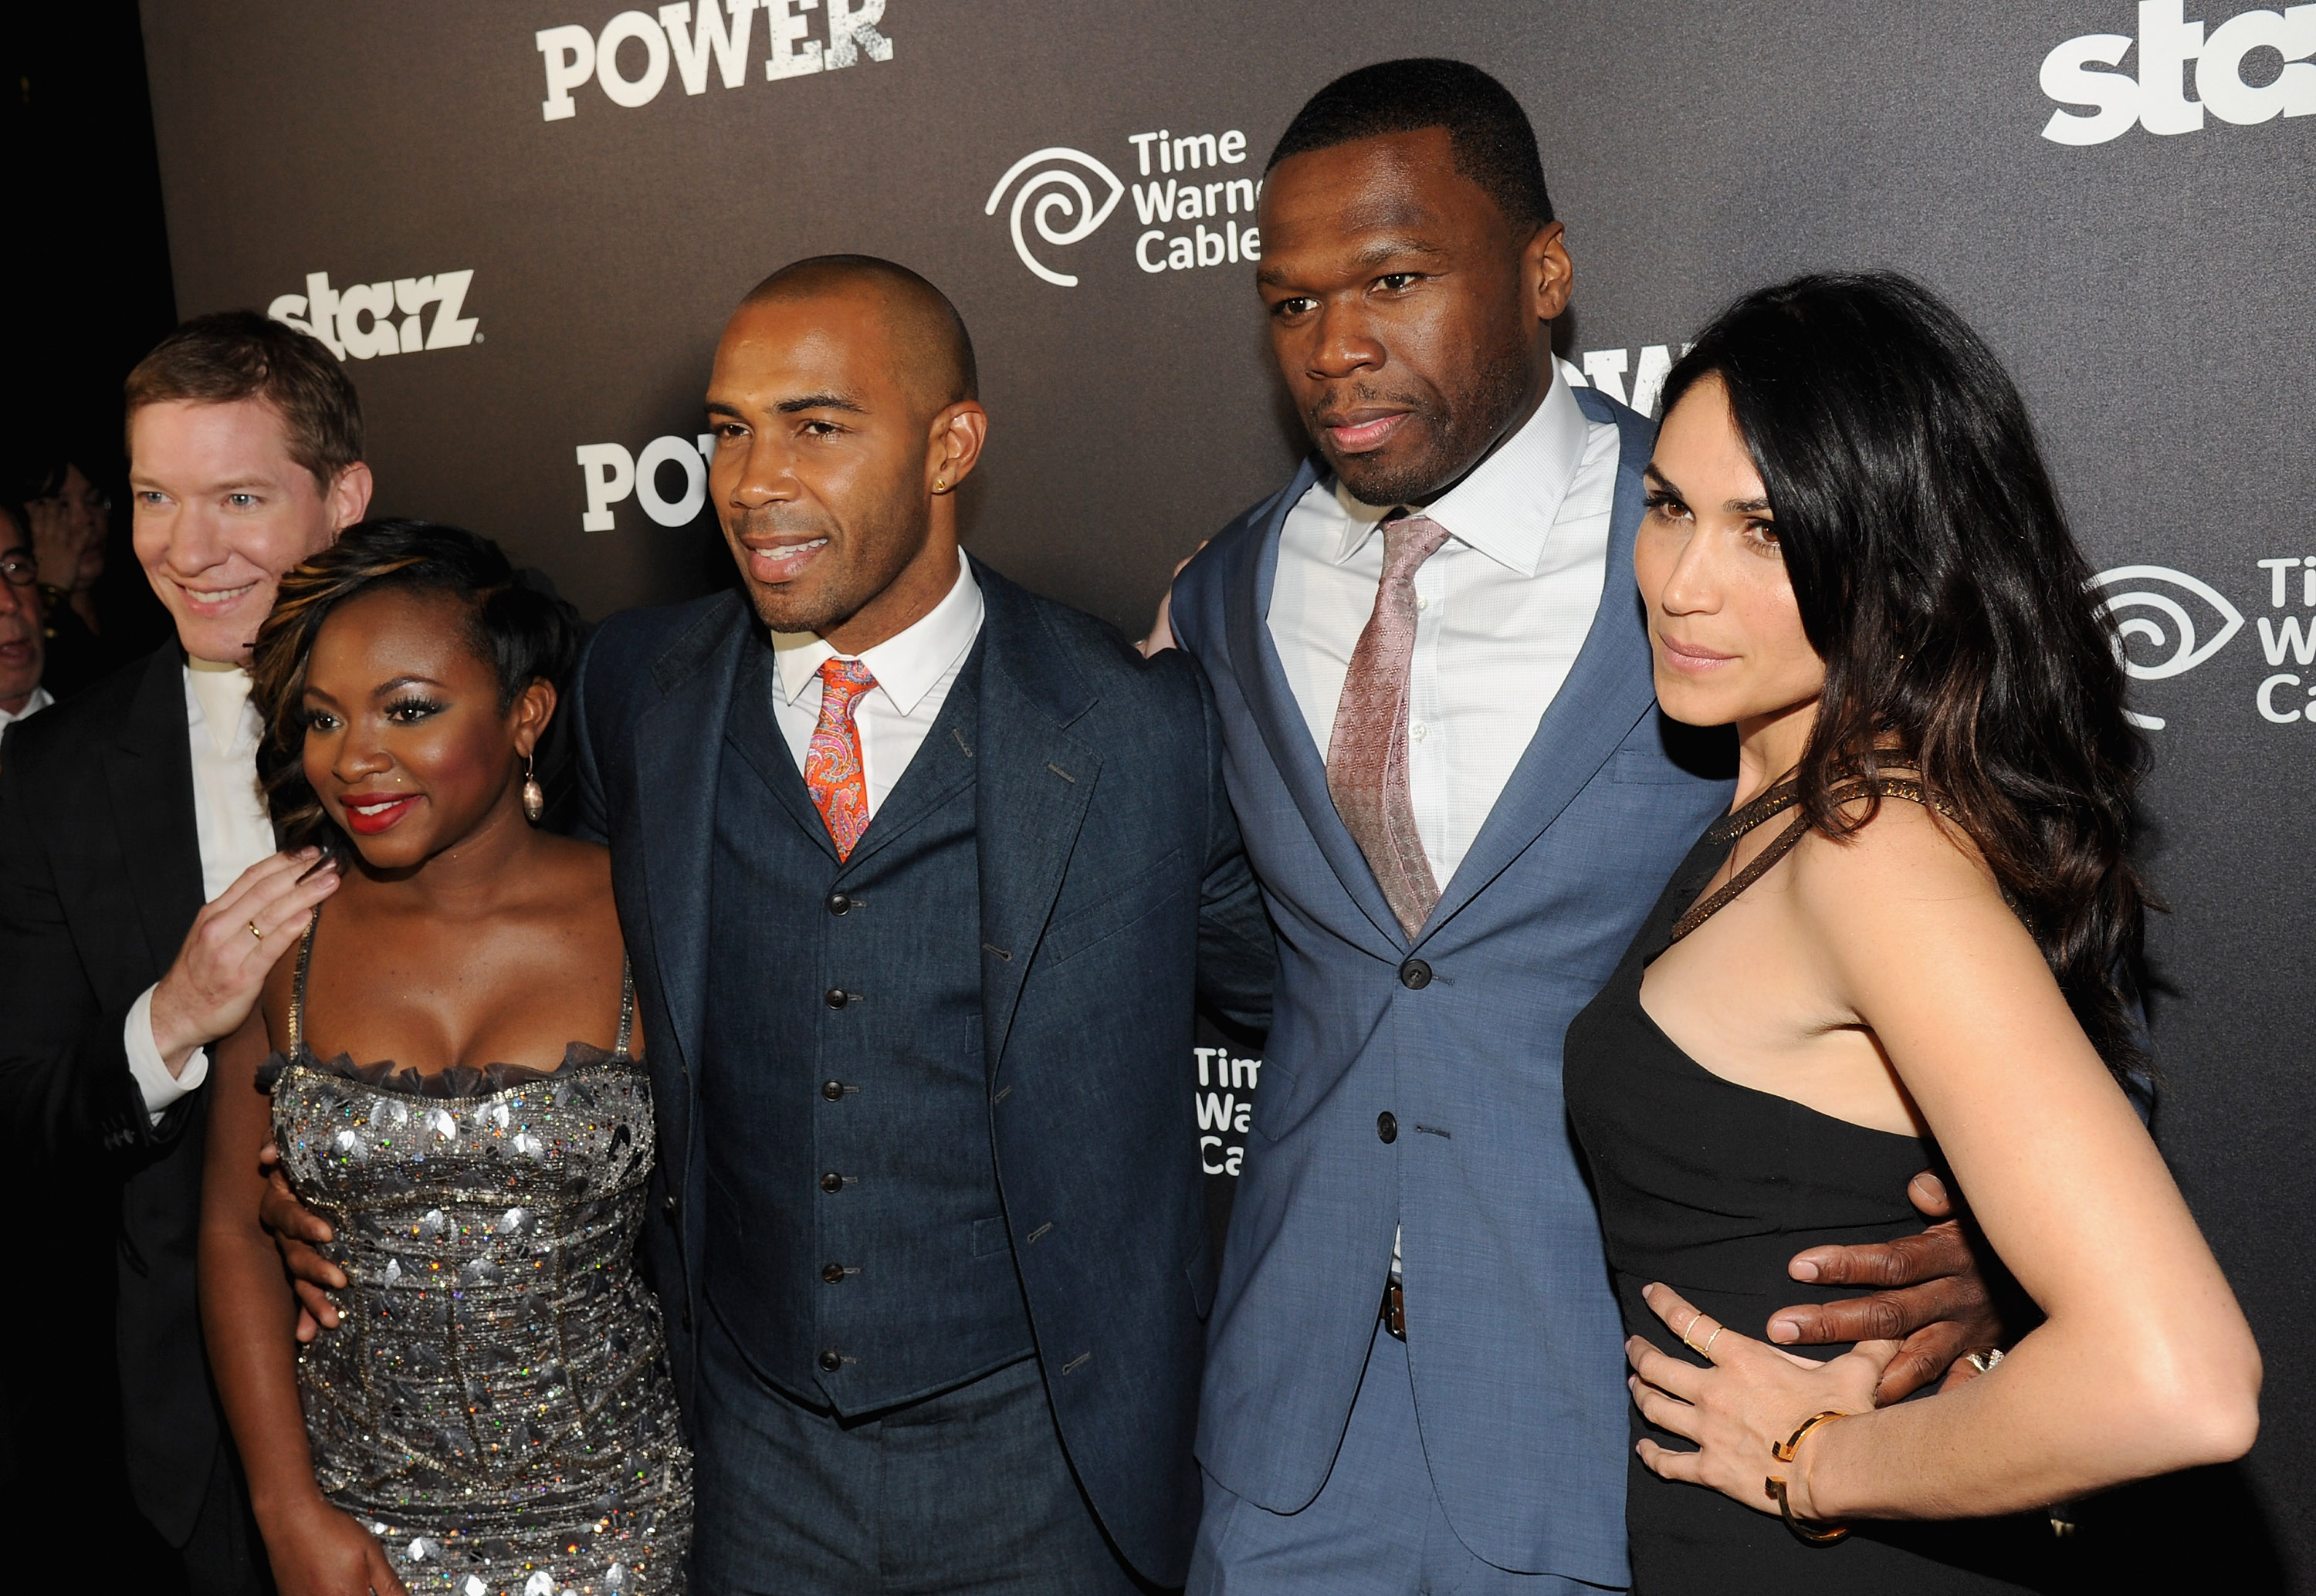 Starz 'Power' Premiere - After Party